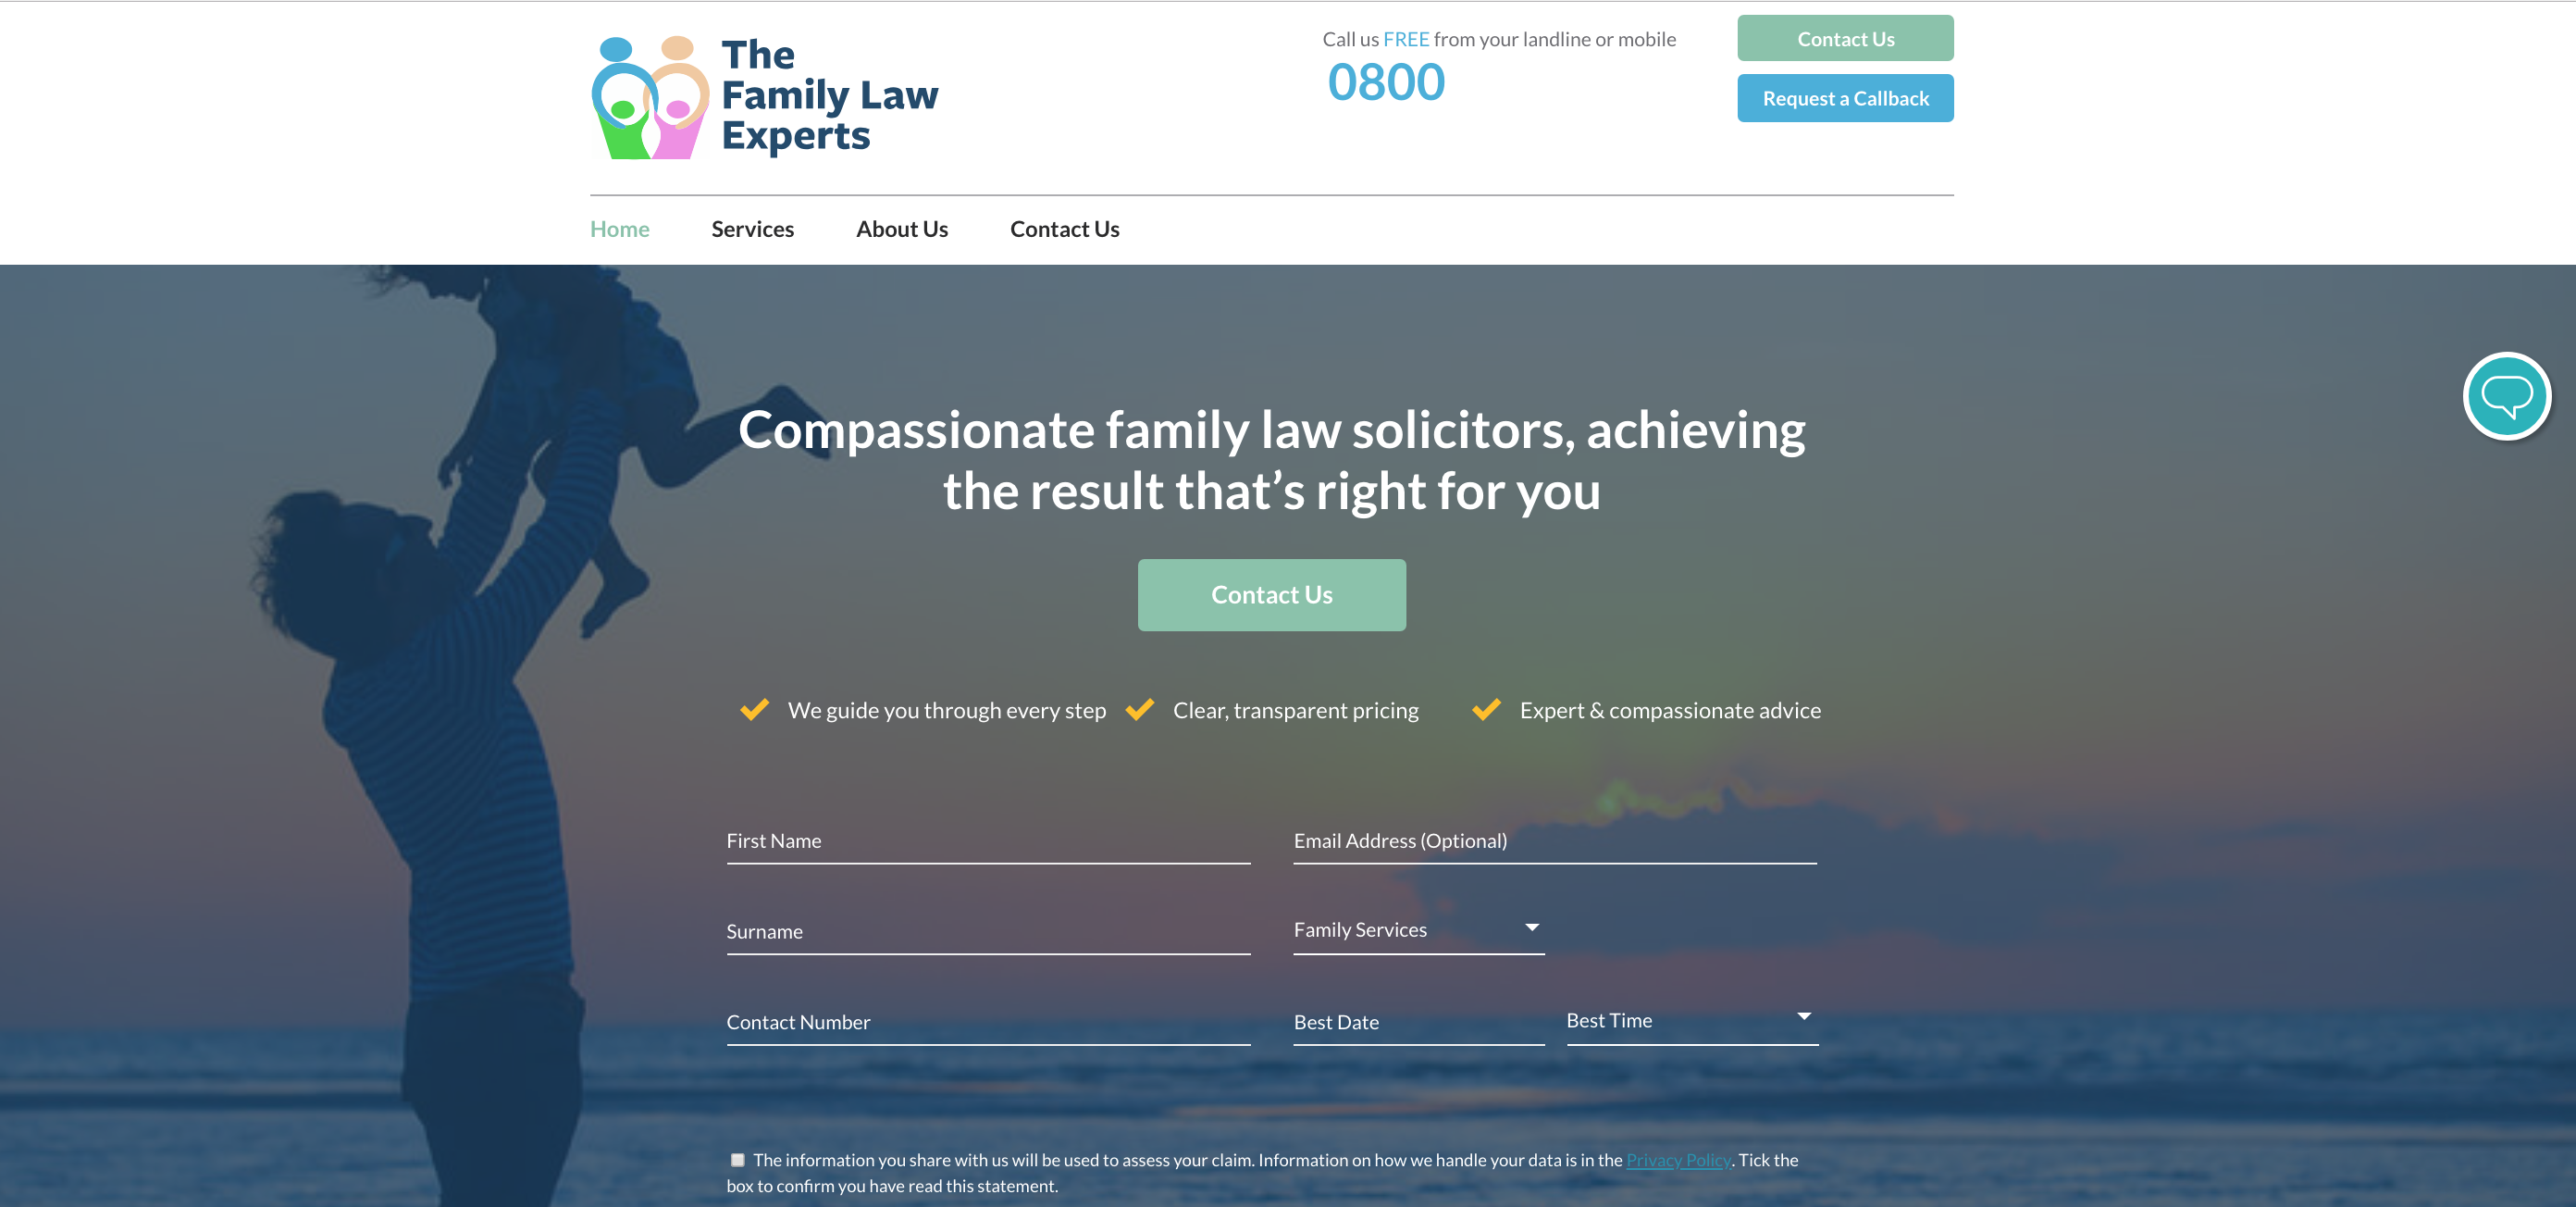 Family Law Lead Generation Image